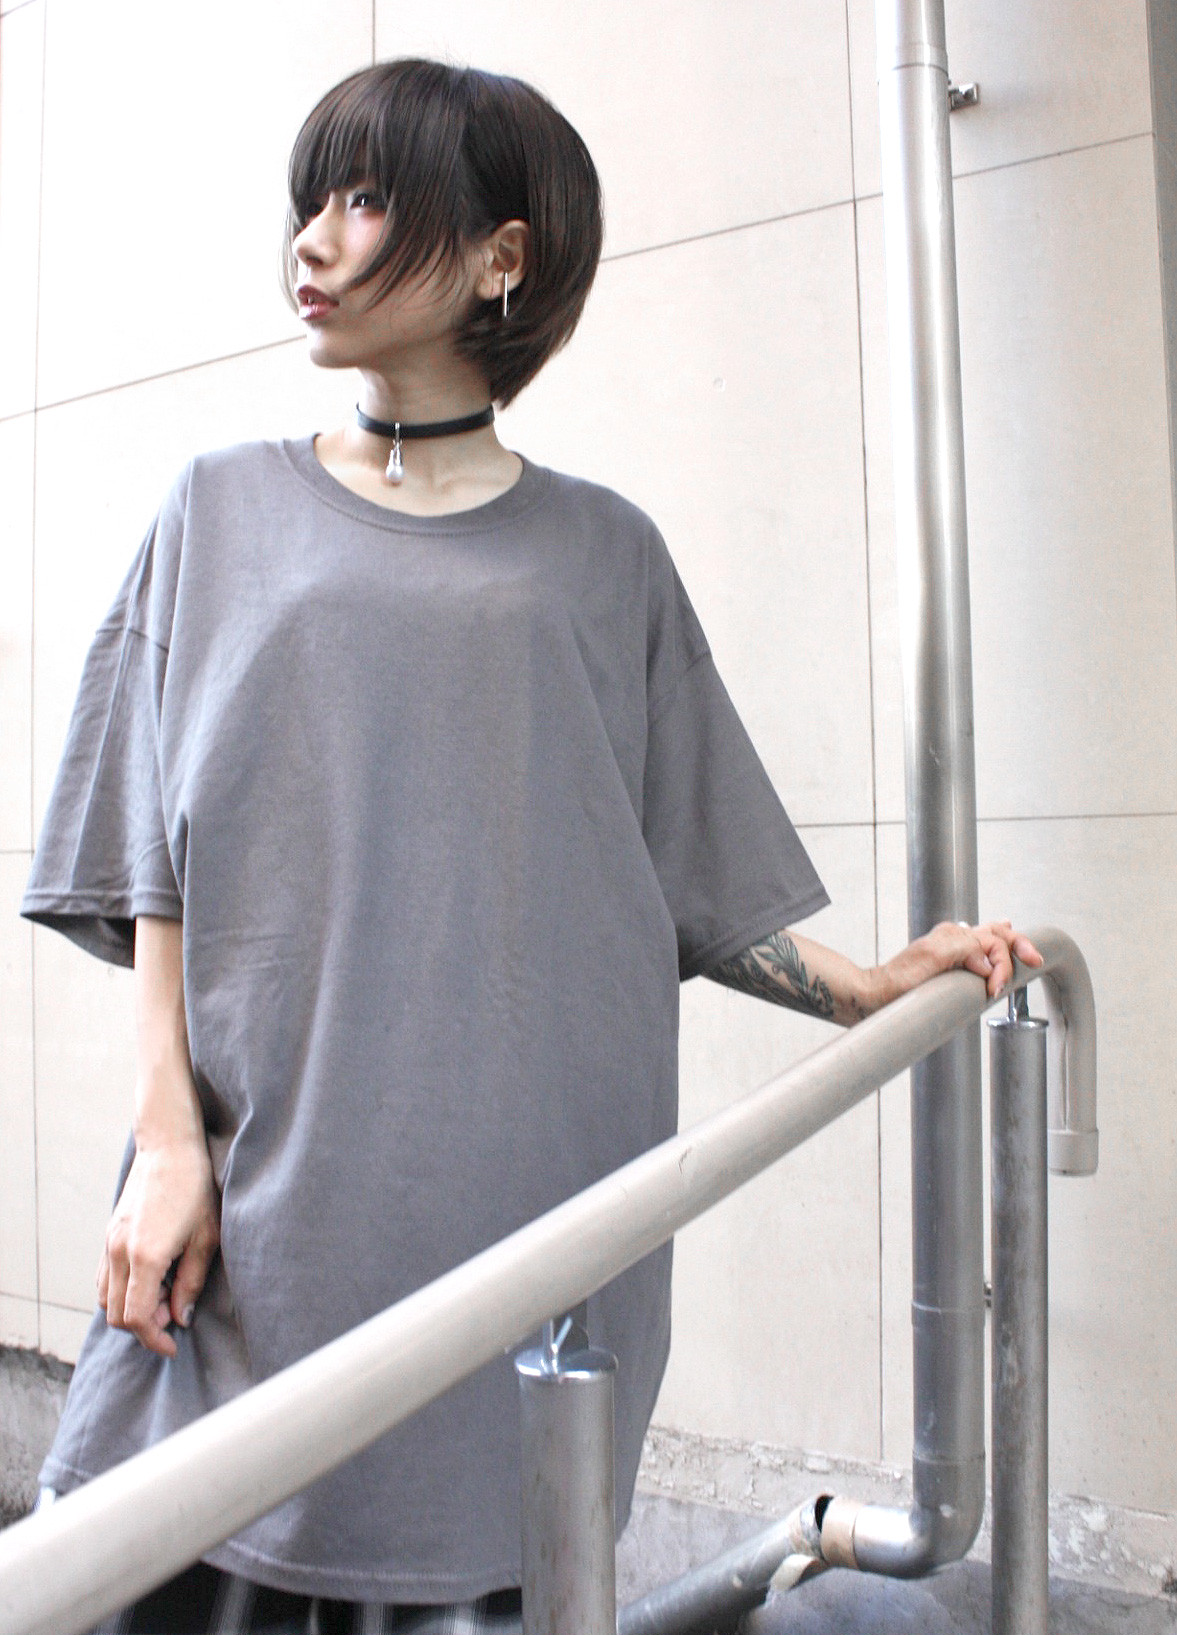 2017.06.20 - unclod - STYLING